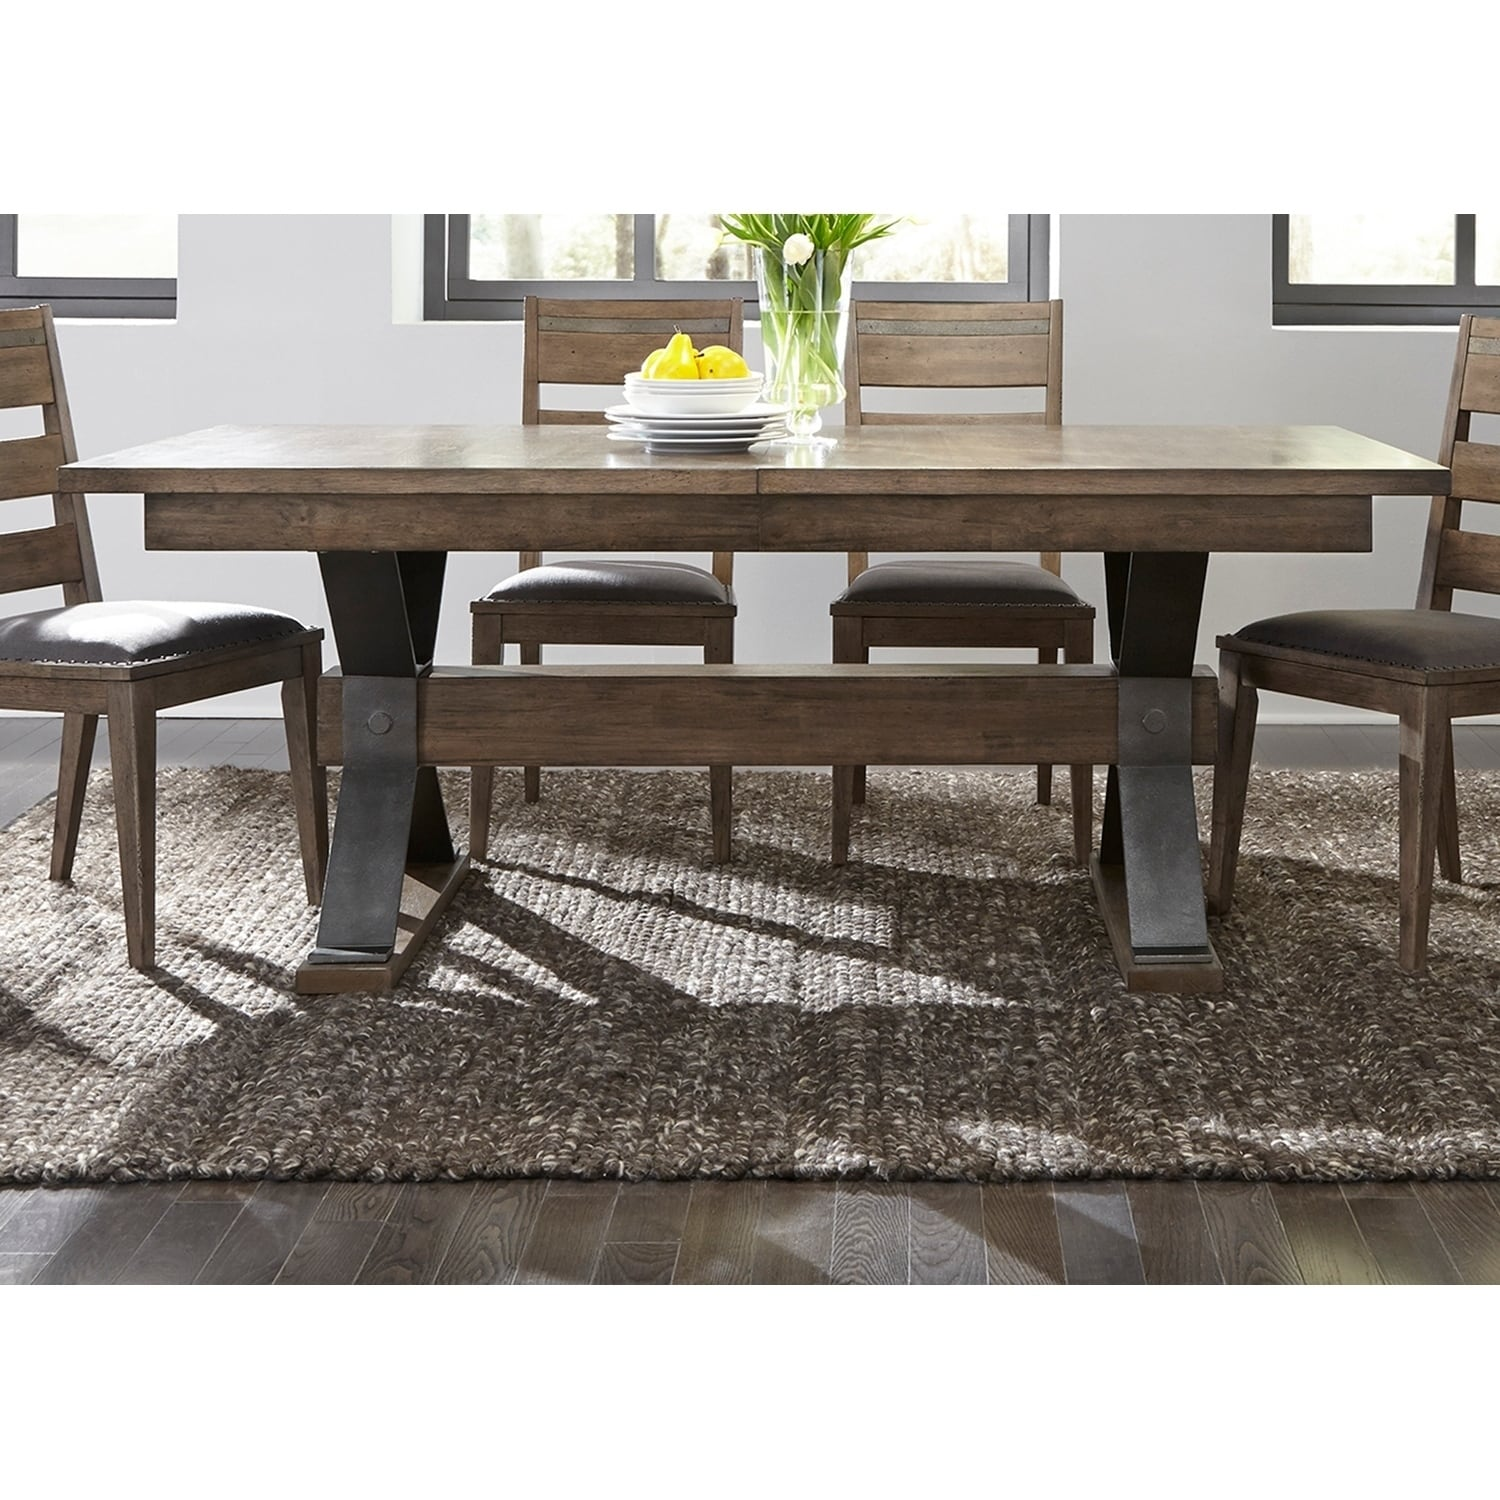 pewter kitchen table and chairs land of nod high chair doll buy dining room tables online at overstock